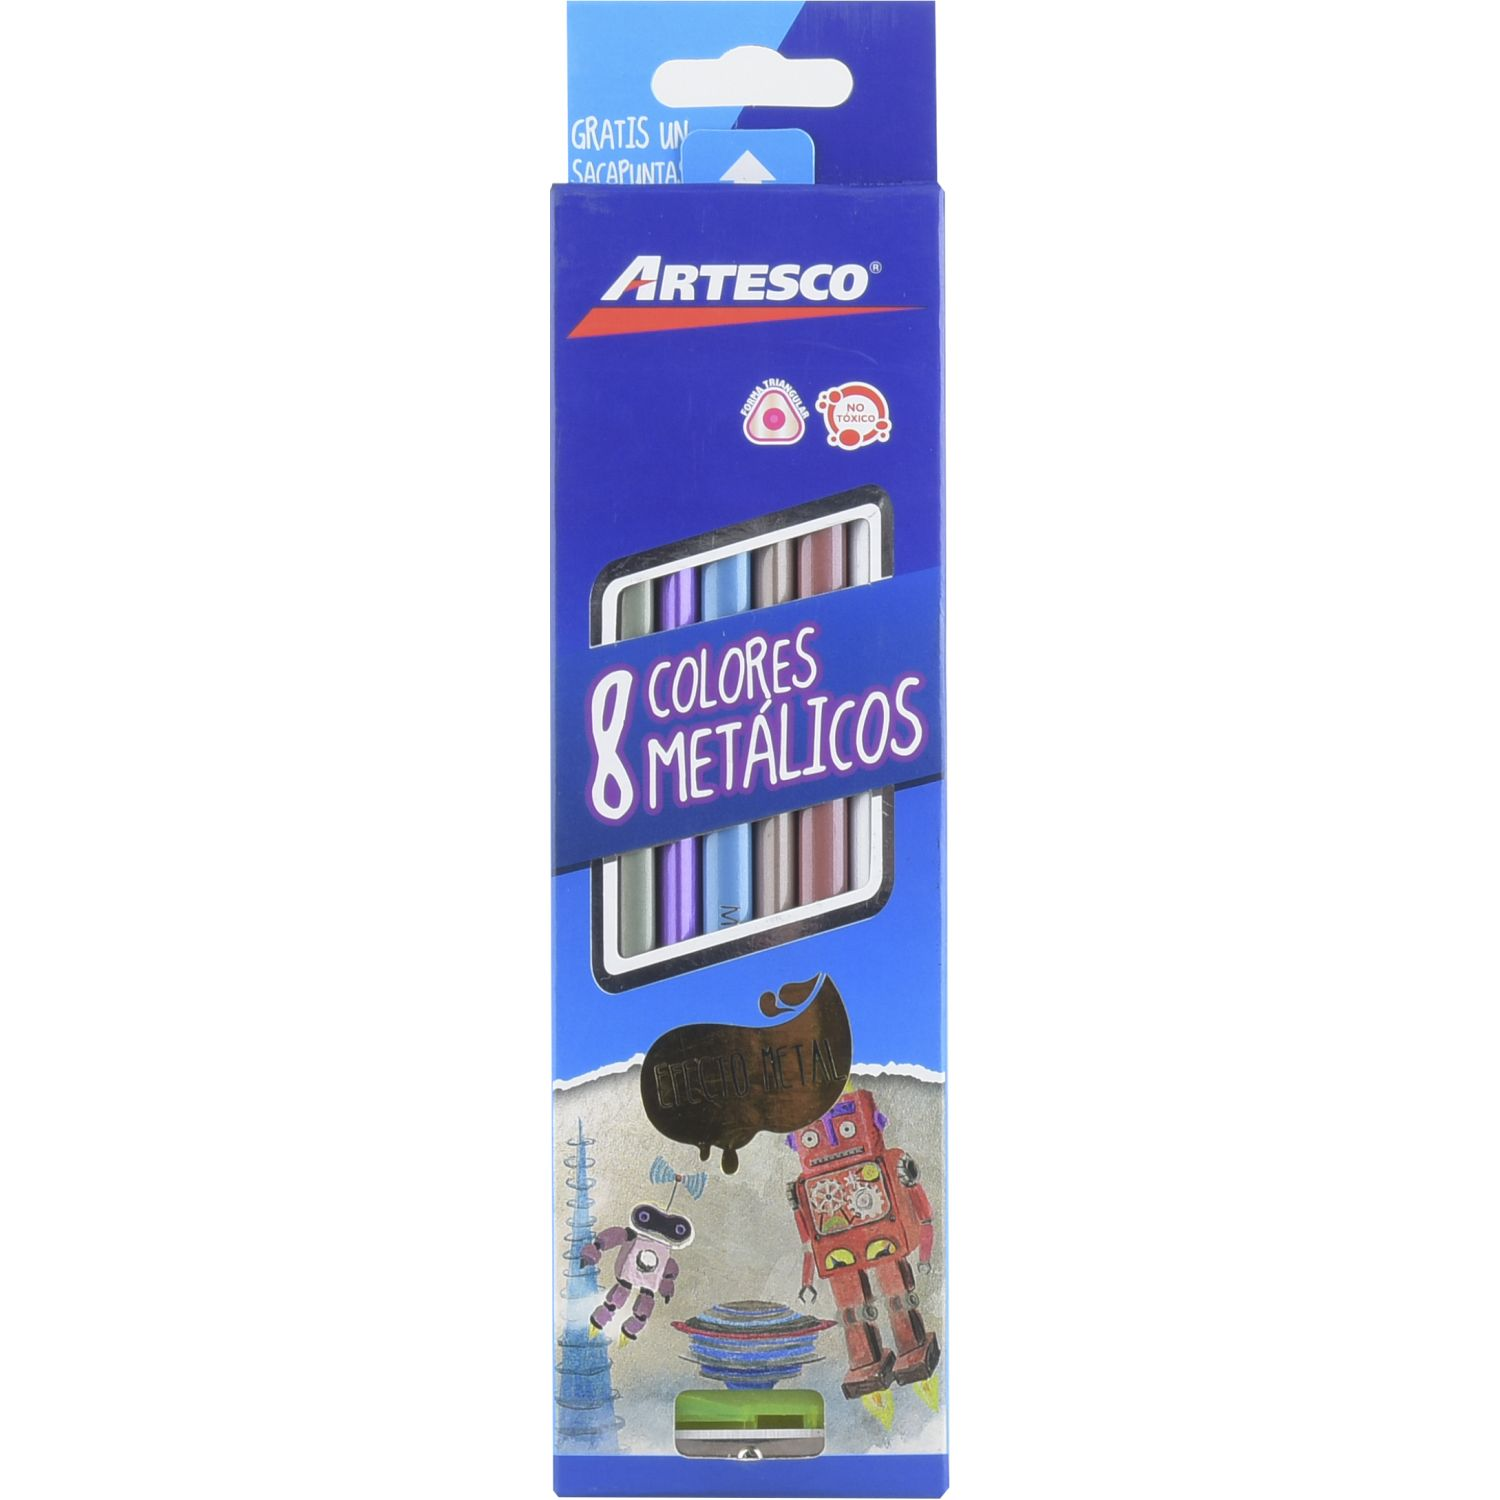 Artesco Colores Metálicos + Sacapuntas Varios Lápices coloreados